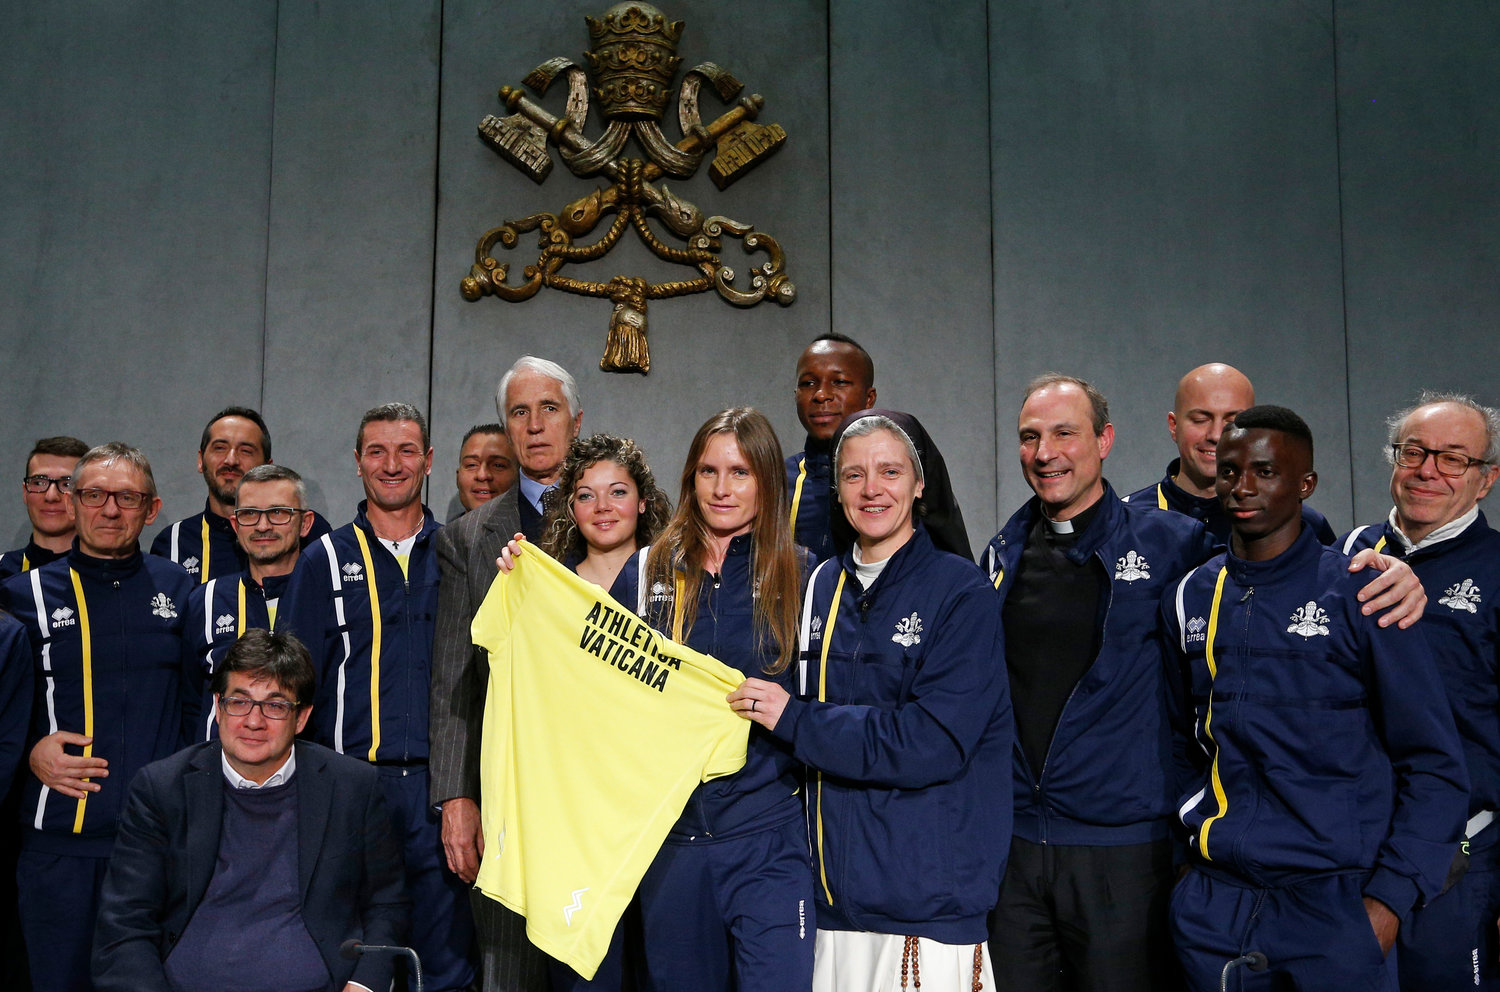 Members of the new Vatican Athletic sports association pose for a photo after a news conference at the Vatican Jan. 10. The Vatican announced the formation of the association, which includes athletes who work at the Vatican.